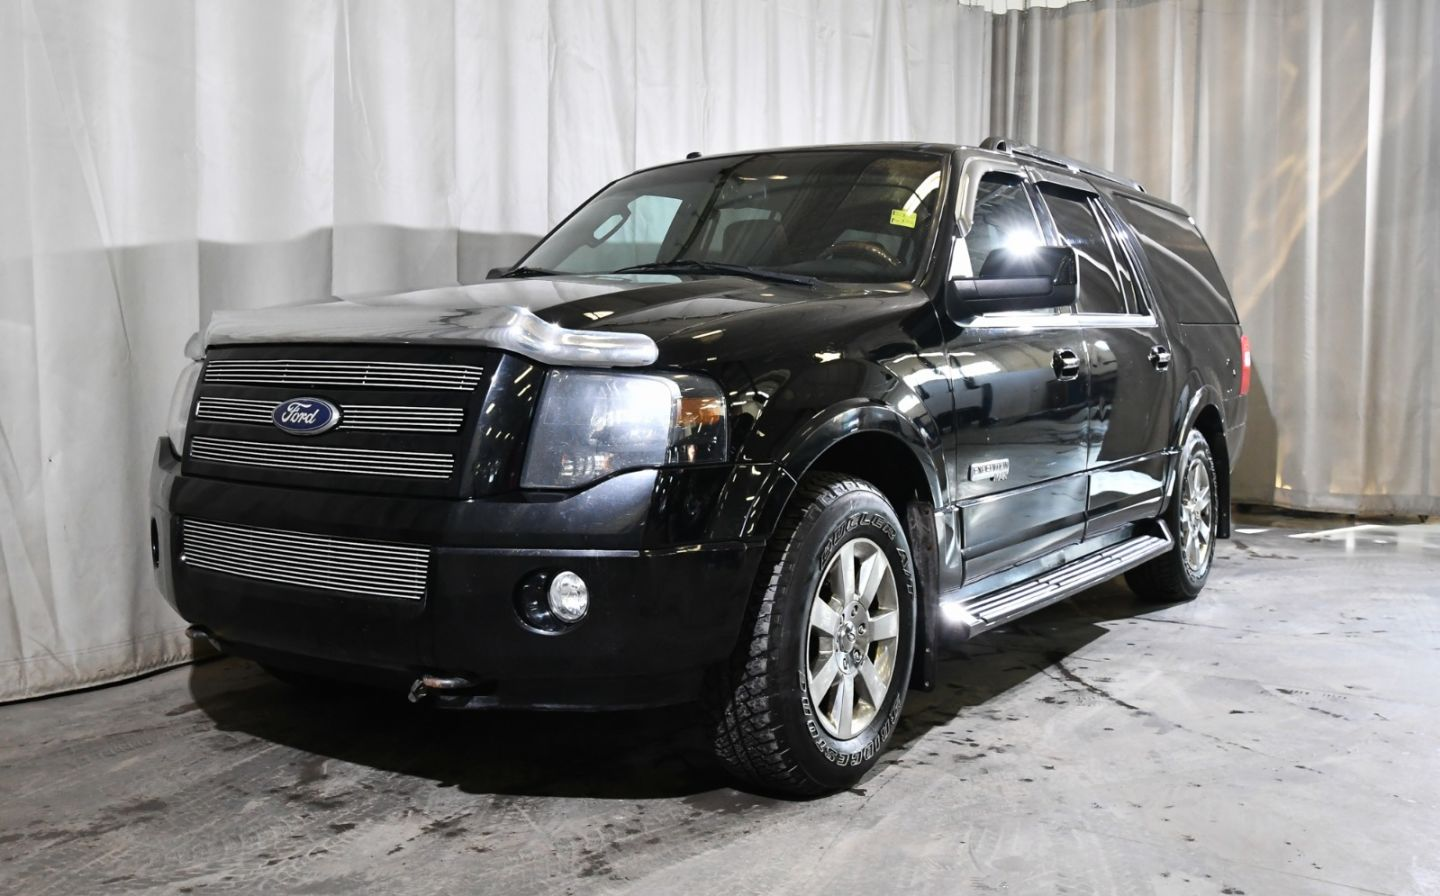 2007 Ford Expedition Max Limited for sale in Red Deer, Alberta